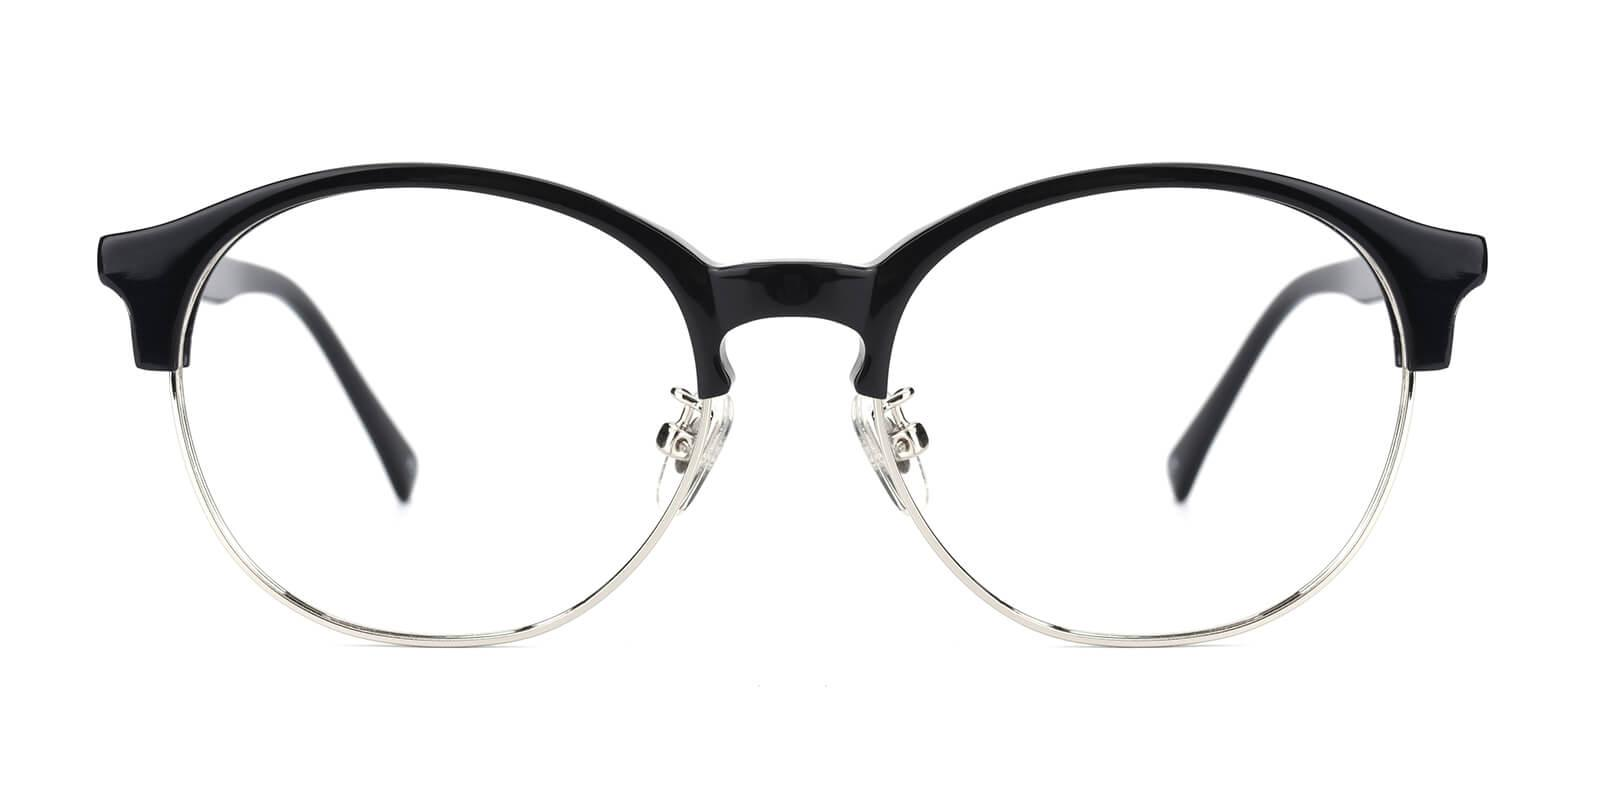 Mandisey-Black-Browline-Combination-Eyeglasses-detail